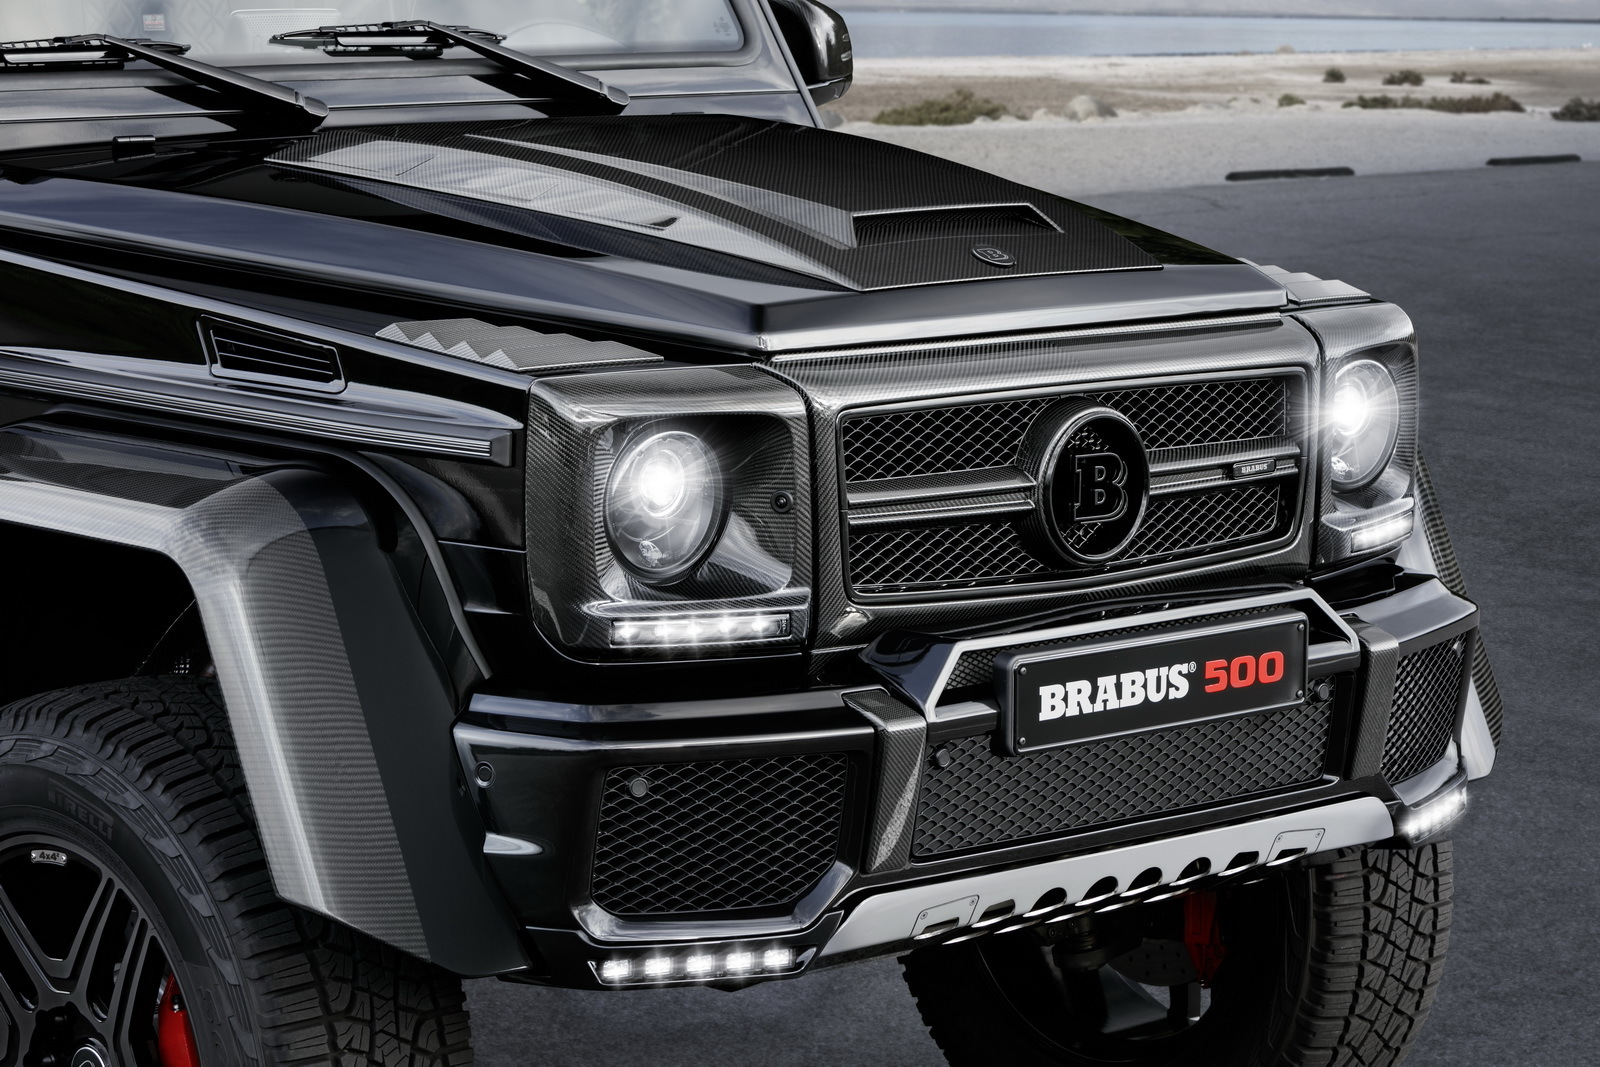 ' ' from the web at 'http://www.blogcdn.com/slideshows/images/slides/362/039/4/S3620394/slug/l/brabus-mercedes-benz-g-500-4-x-4-004-1.jpg'